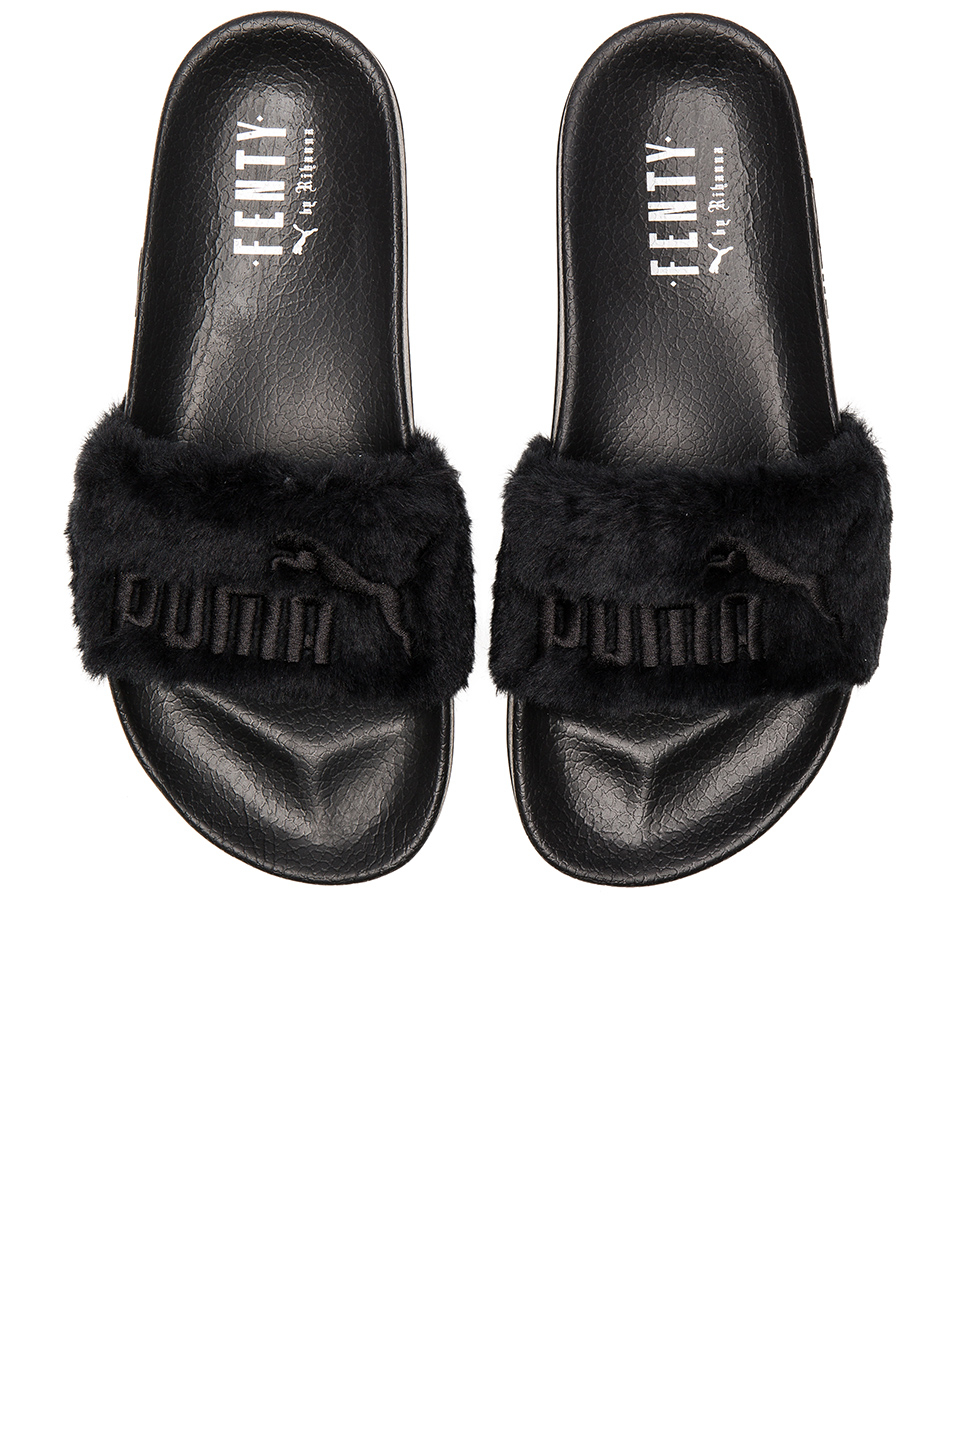 puma fenty leadcat faux fur slide sandals in black lyst. Black Bedroom Furniture Sets. Home Design Ideas